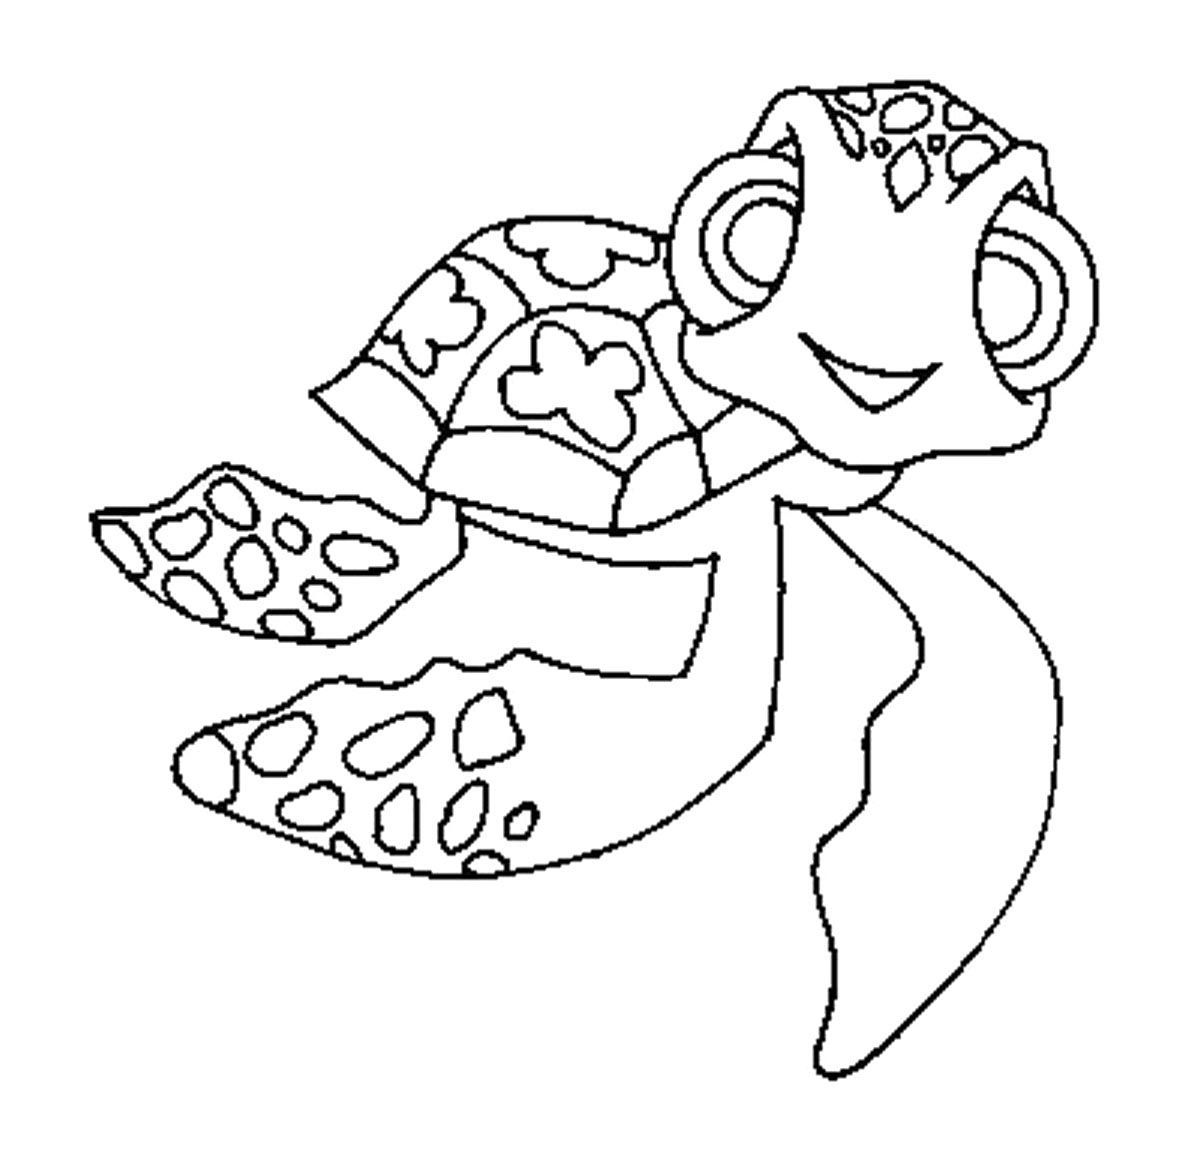 Turtle Very Unique Coloring Page